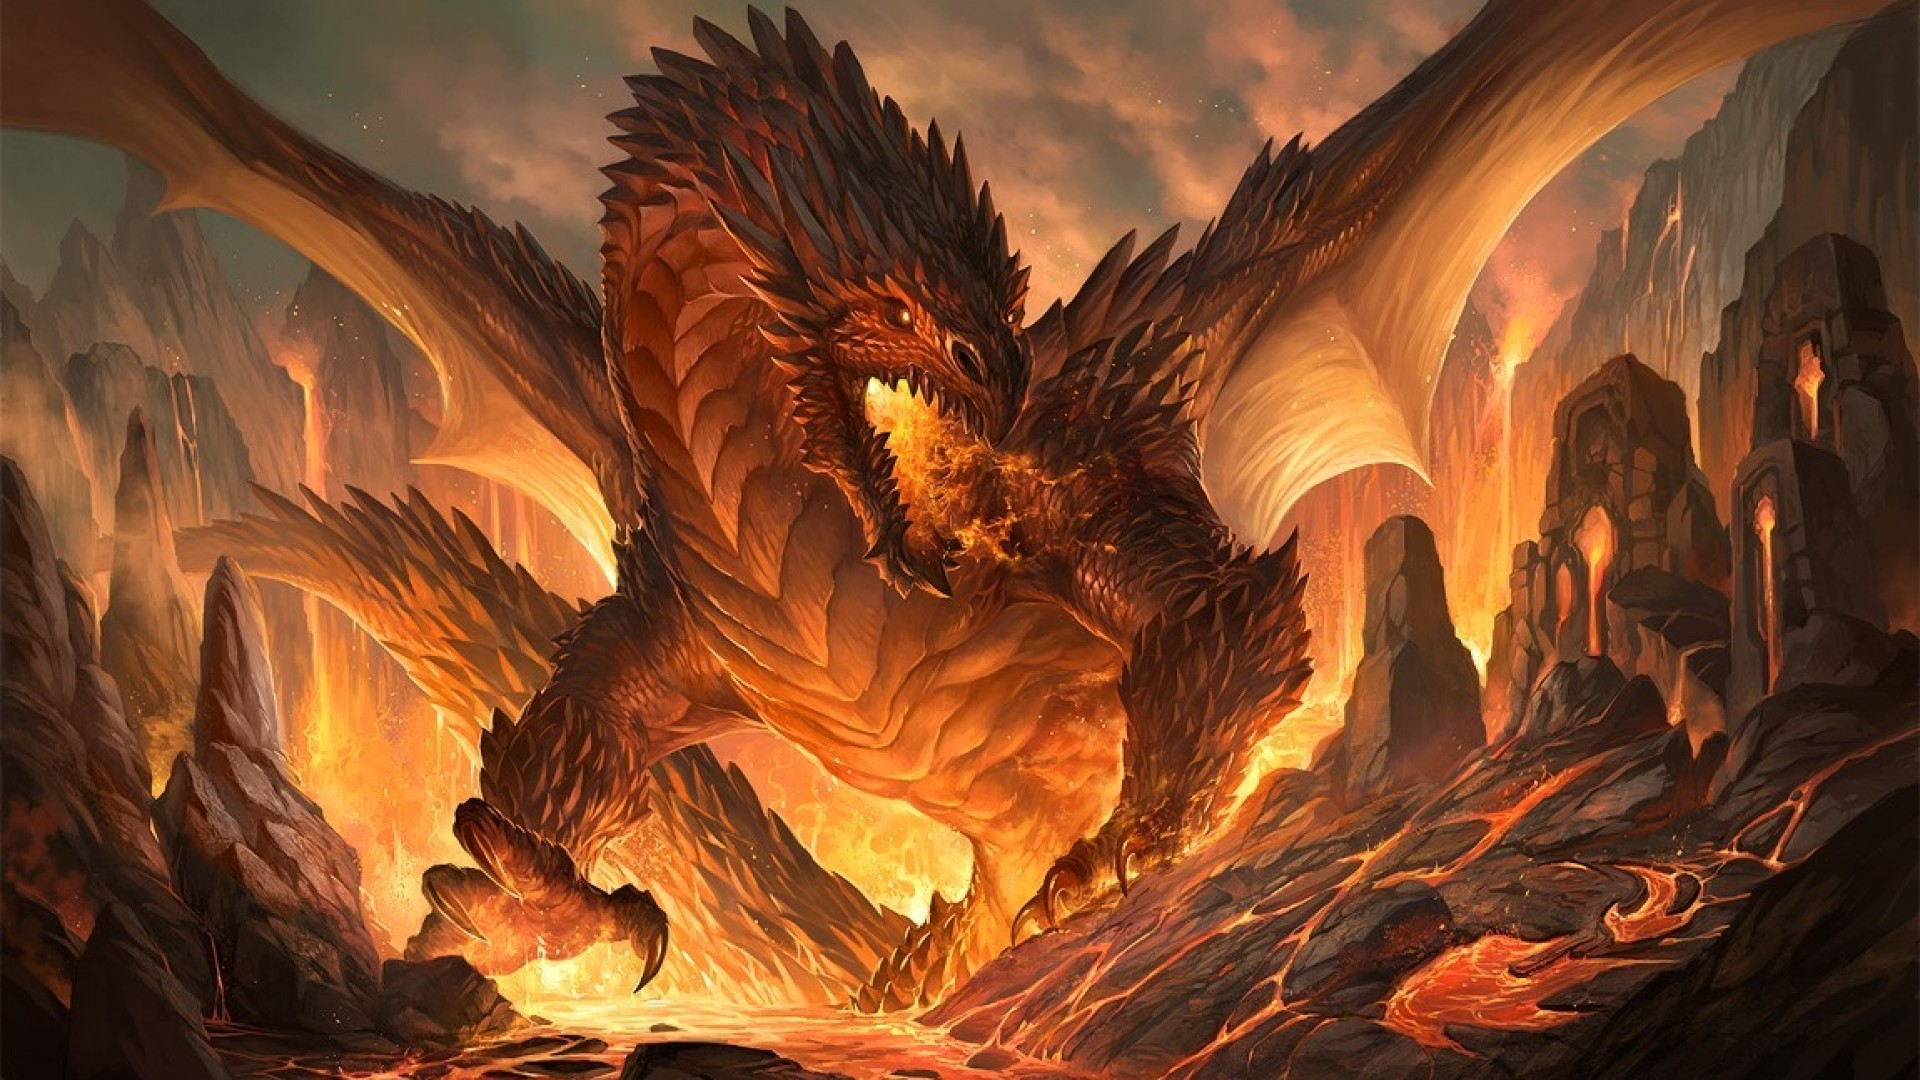 Dragons: Legends of the Skies 884931-fantasy-dragon-wallpaper-1920x1080-image